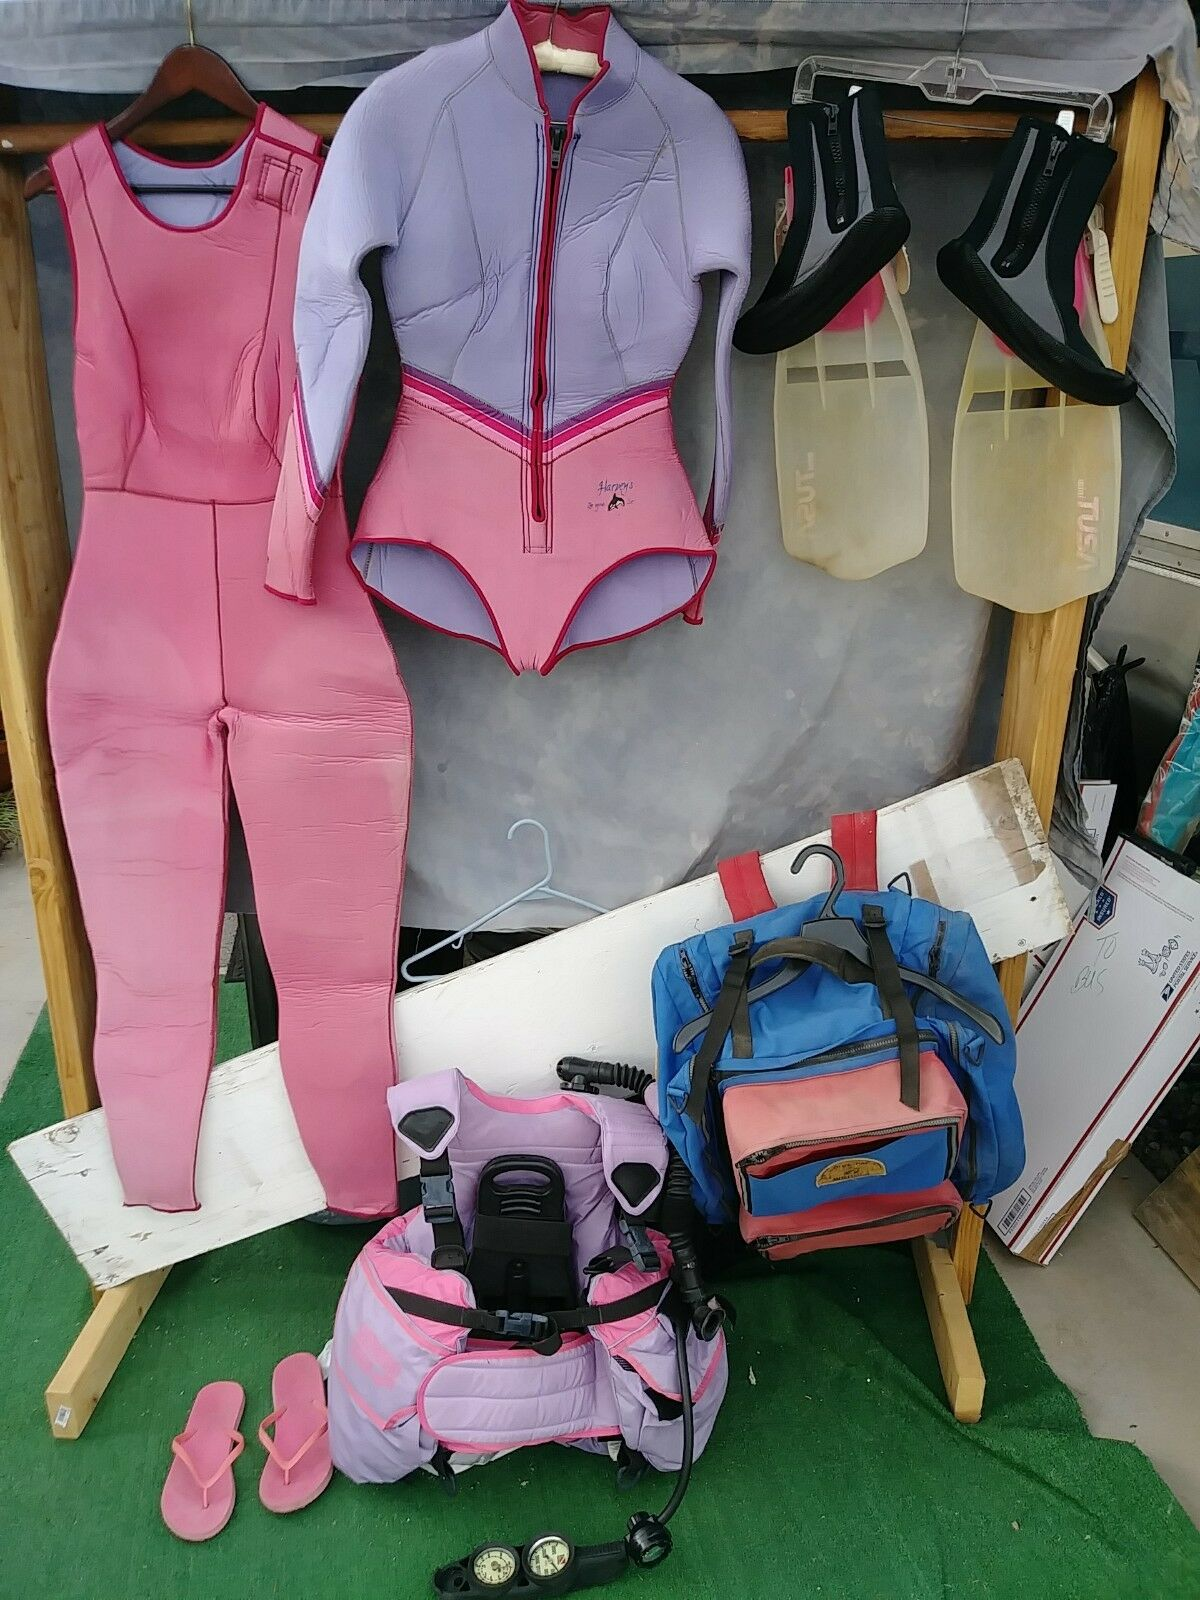 Scuba   Skin Diving; Surfing   Body Boarding Gear and Wetsuit